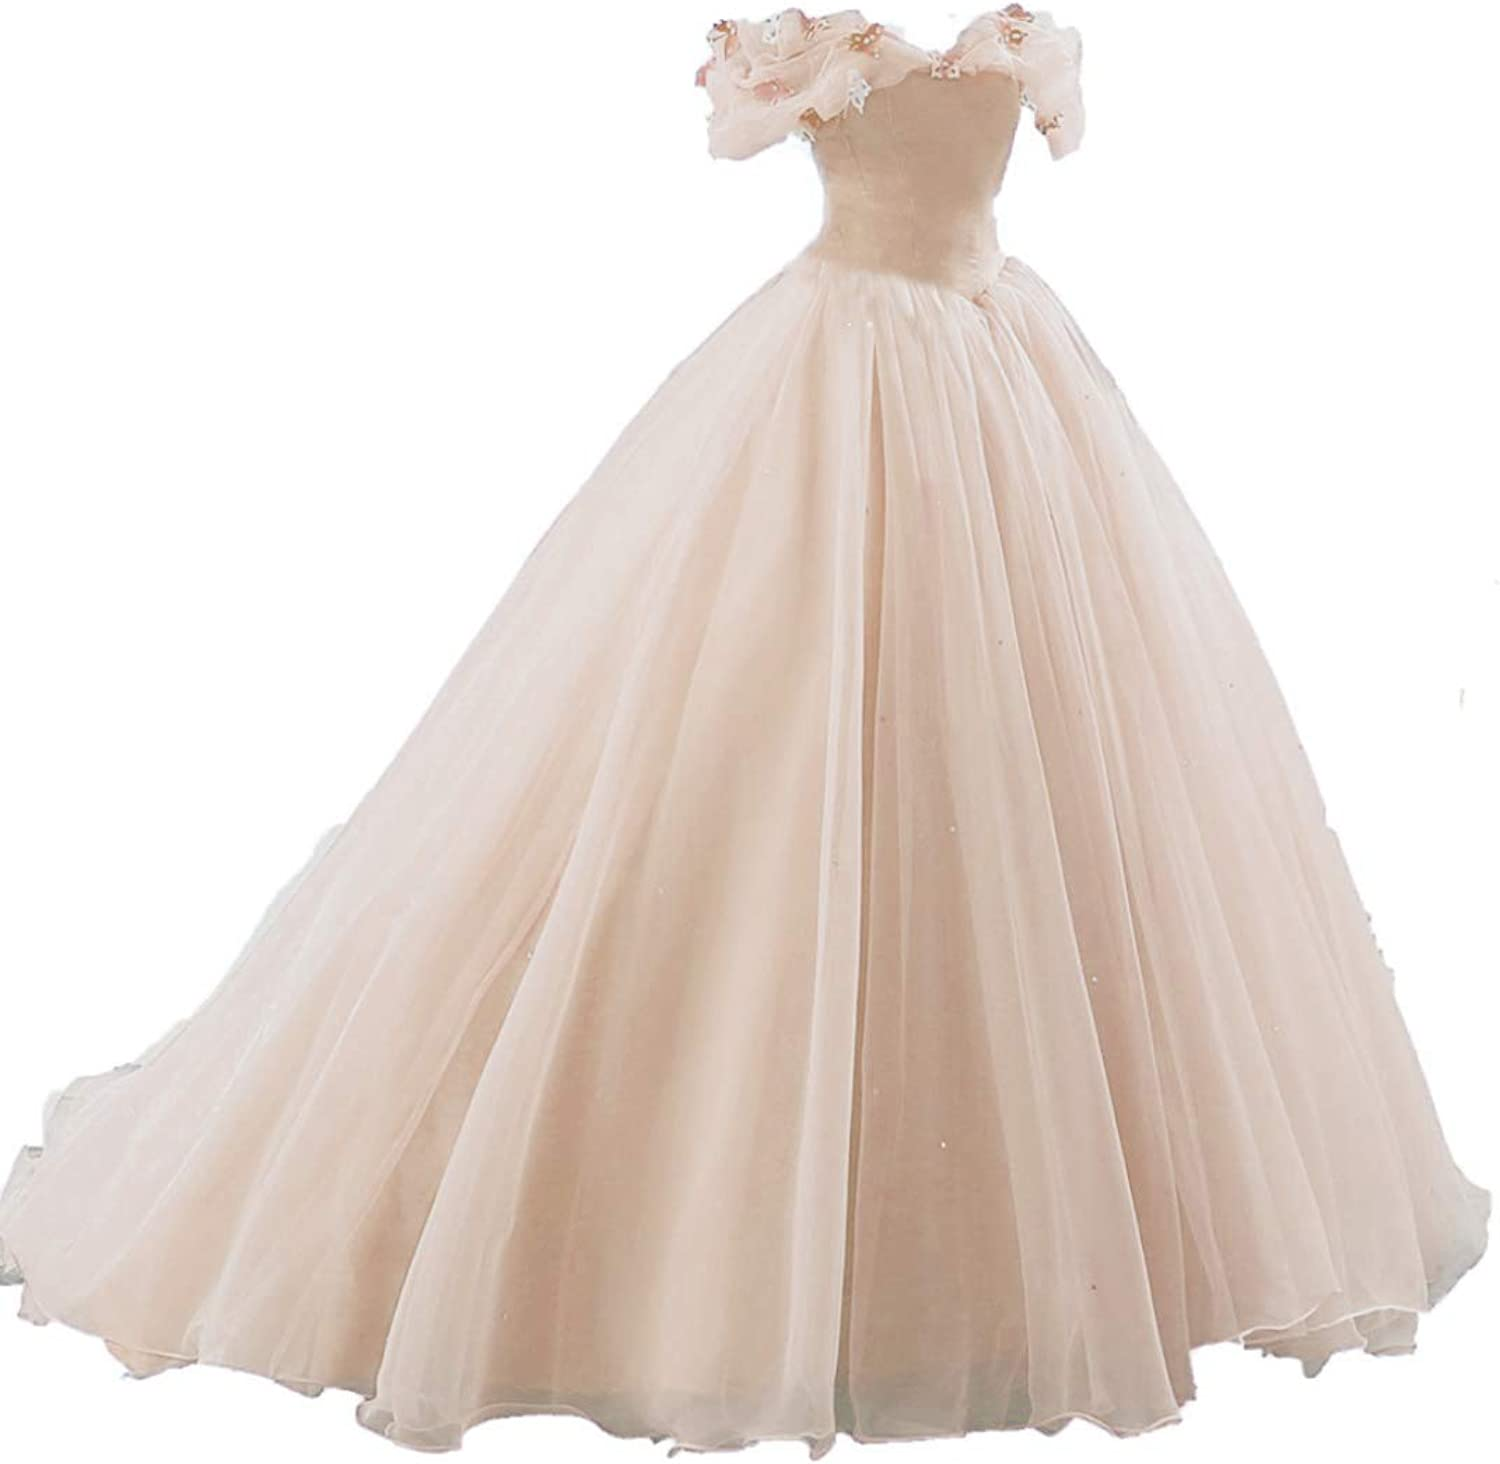 ZVOCY Women's Ball Gown Cinderella Quinceanera Dresses Butterfly Off The Shoulder Wedding Dress